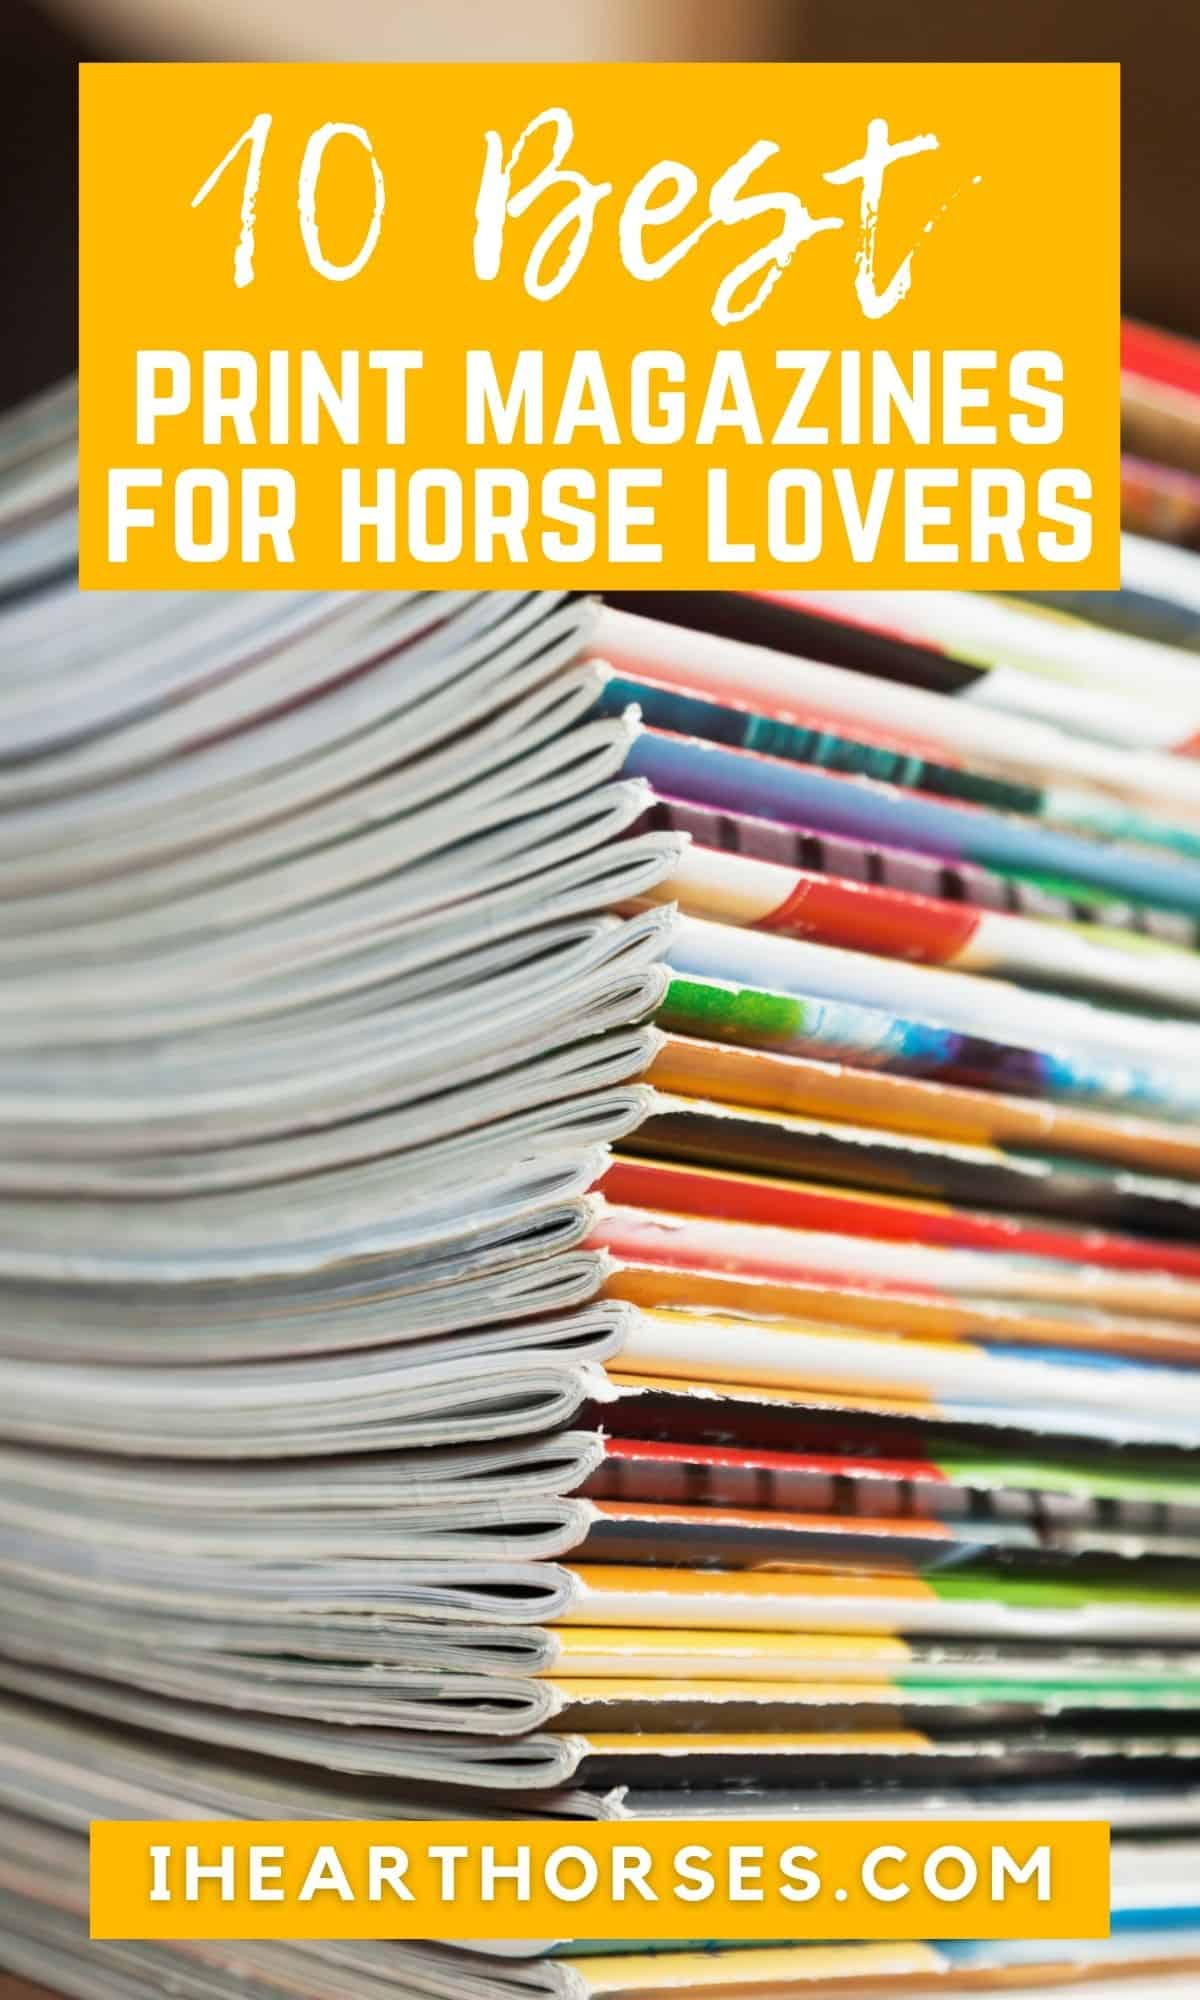 Stack of magazines with banner saying best print magazines for horse lovers